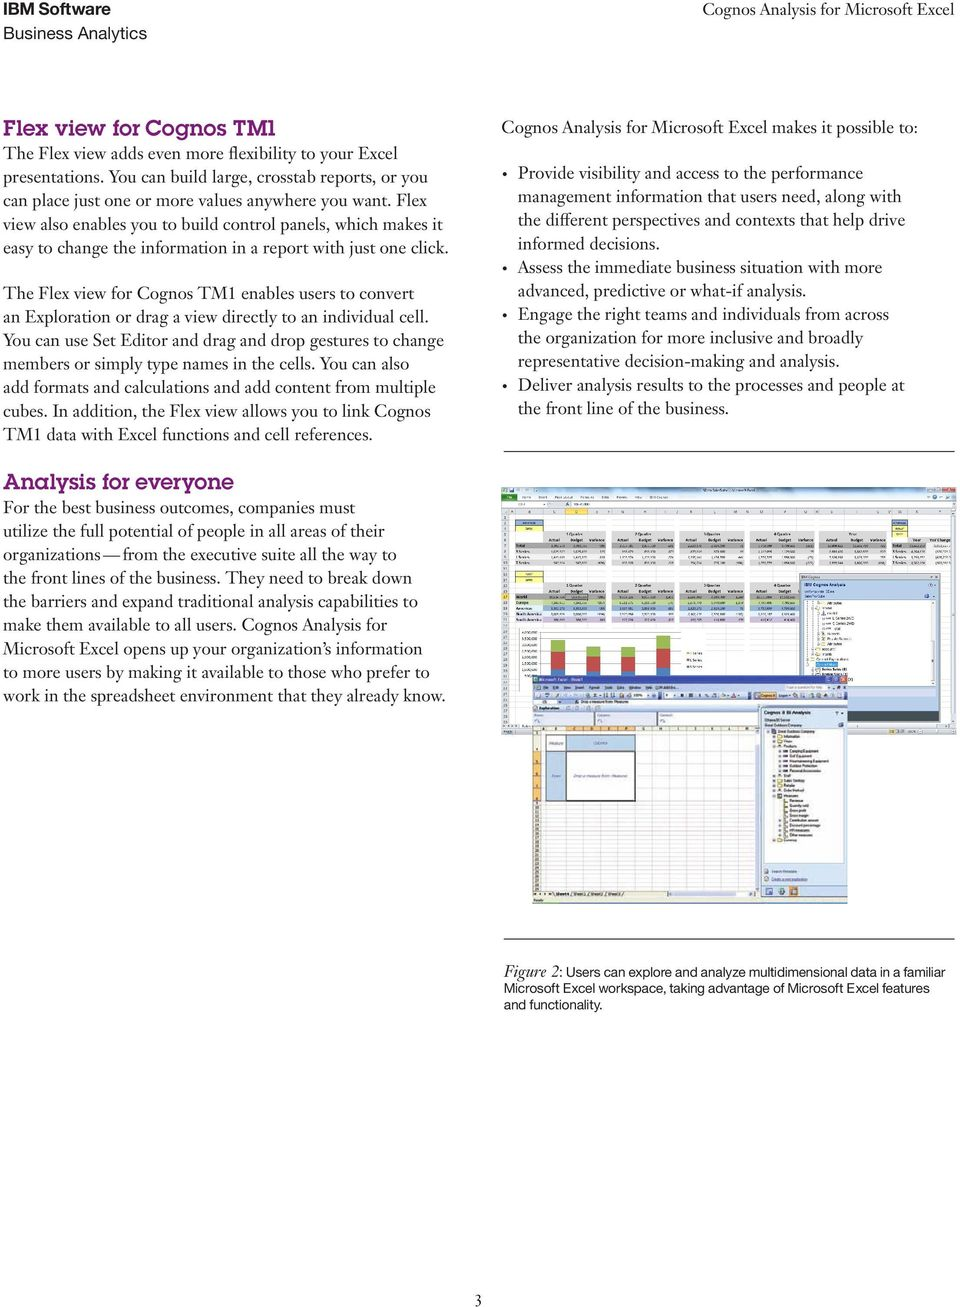 The Flex view for Cognos TM1 enables users to convert an Exploration or drag a view directly to an individual cell.